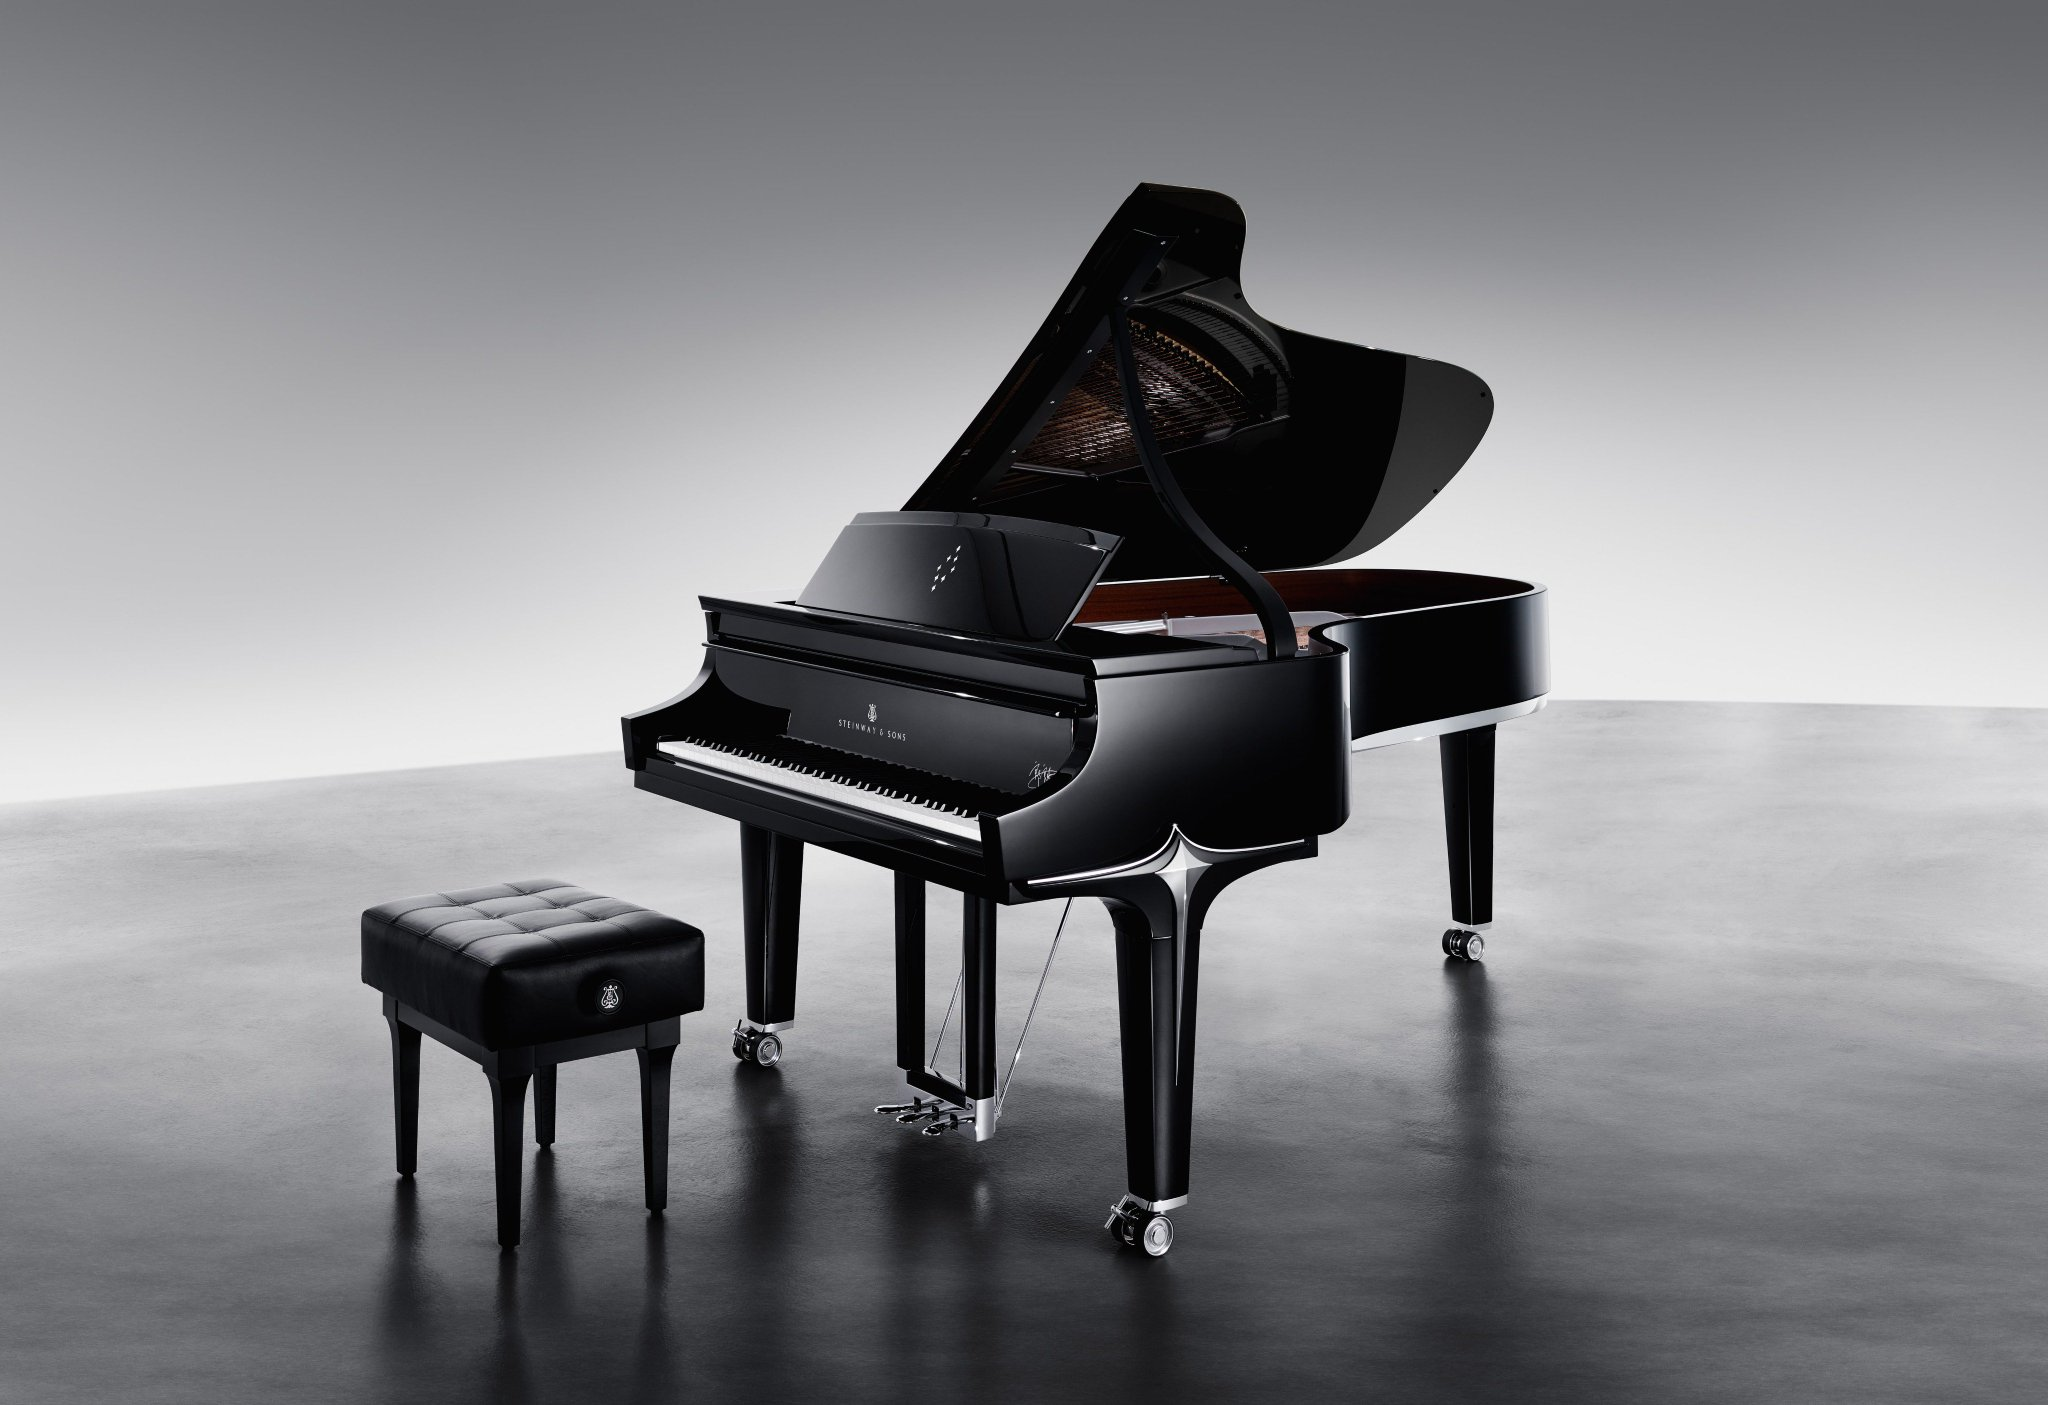 @DakotaJacksonNY Follow I am proud to announce the launch of The Lang Lang Black Diamond designed by @DakotaJacksonNY in collaboration with @SteinwayAndSons and @lang_lang . Officially unveiled April 2019, @philharmonie